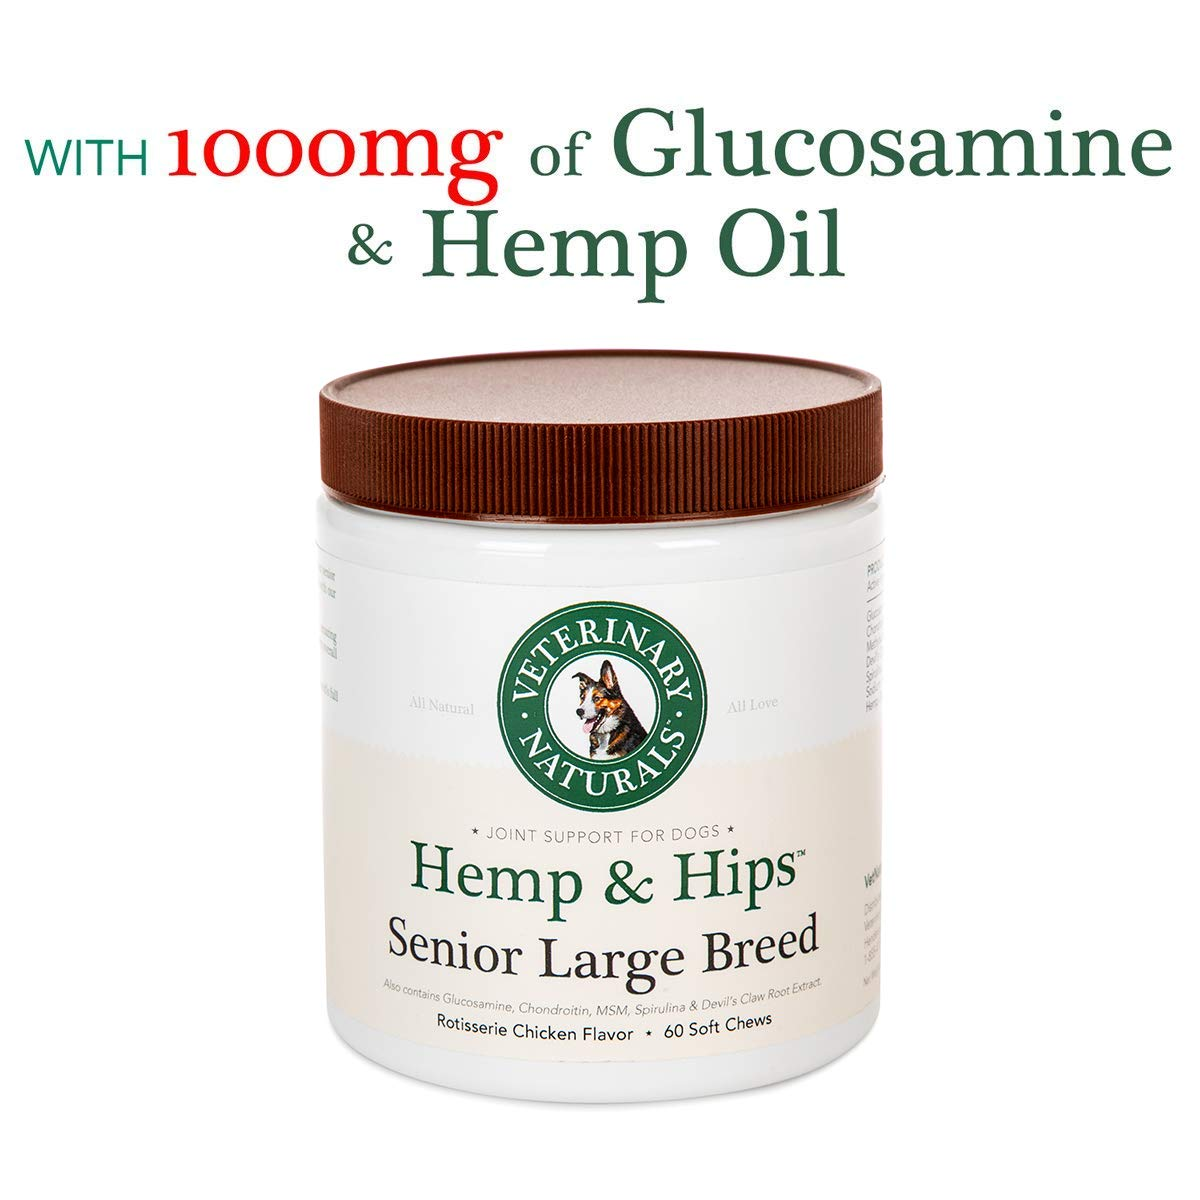 Veterinary Naturals Hemp & Hips Dog Joint Supplement - Glucosamine and Hemp Oil for Dogs - 'Senior Large Breed' Dog Arthritis Supplement - 60 Soft Chew Senior Dog Vitamins, Rotisserie Chicken Flavor by Veterinary Naturals (Image #1)